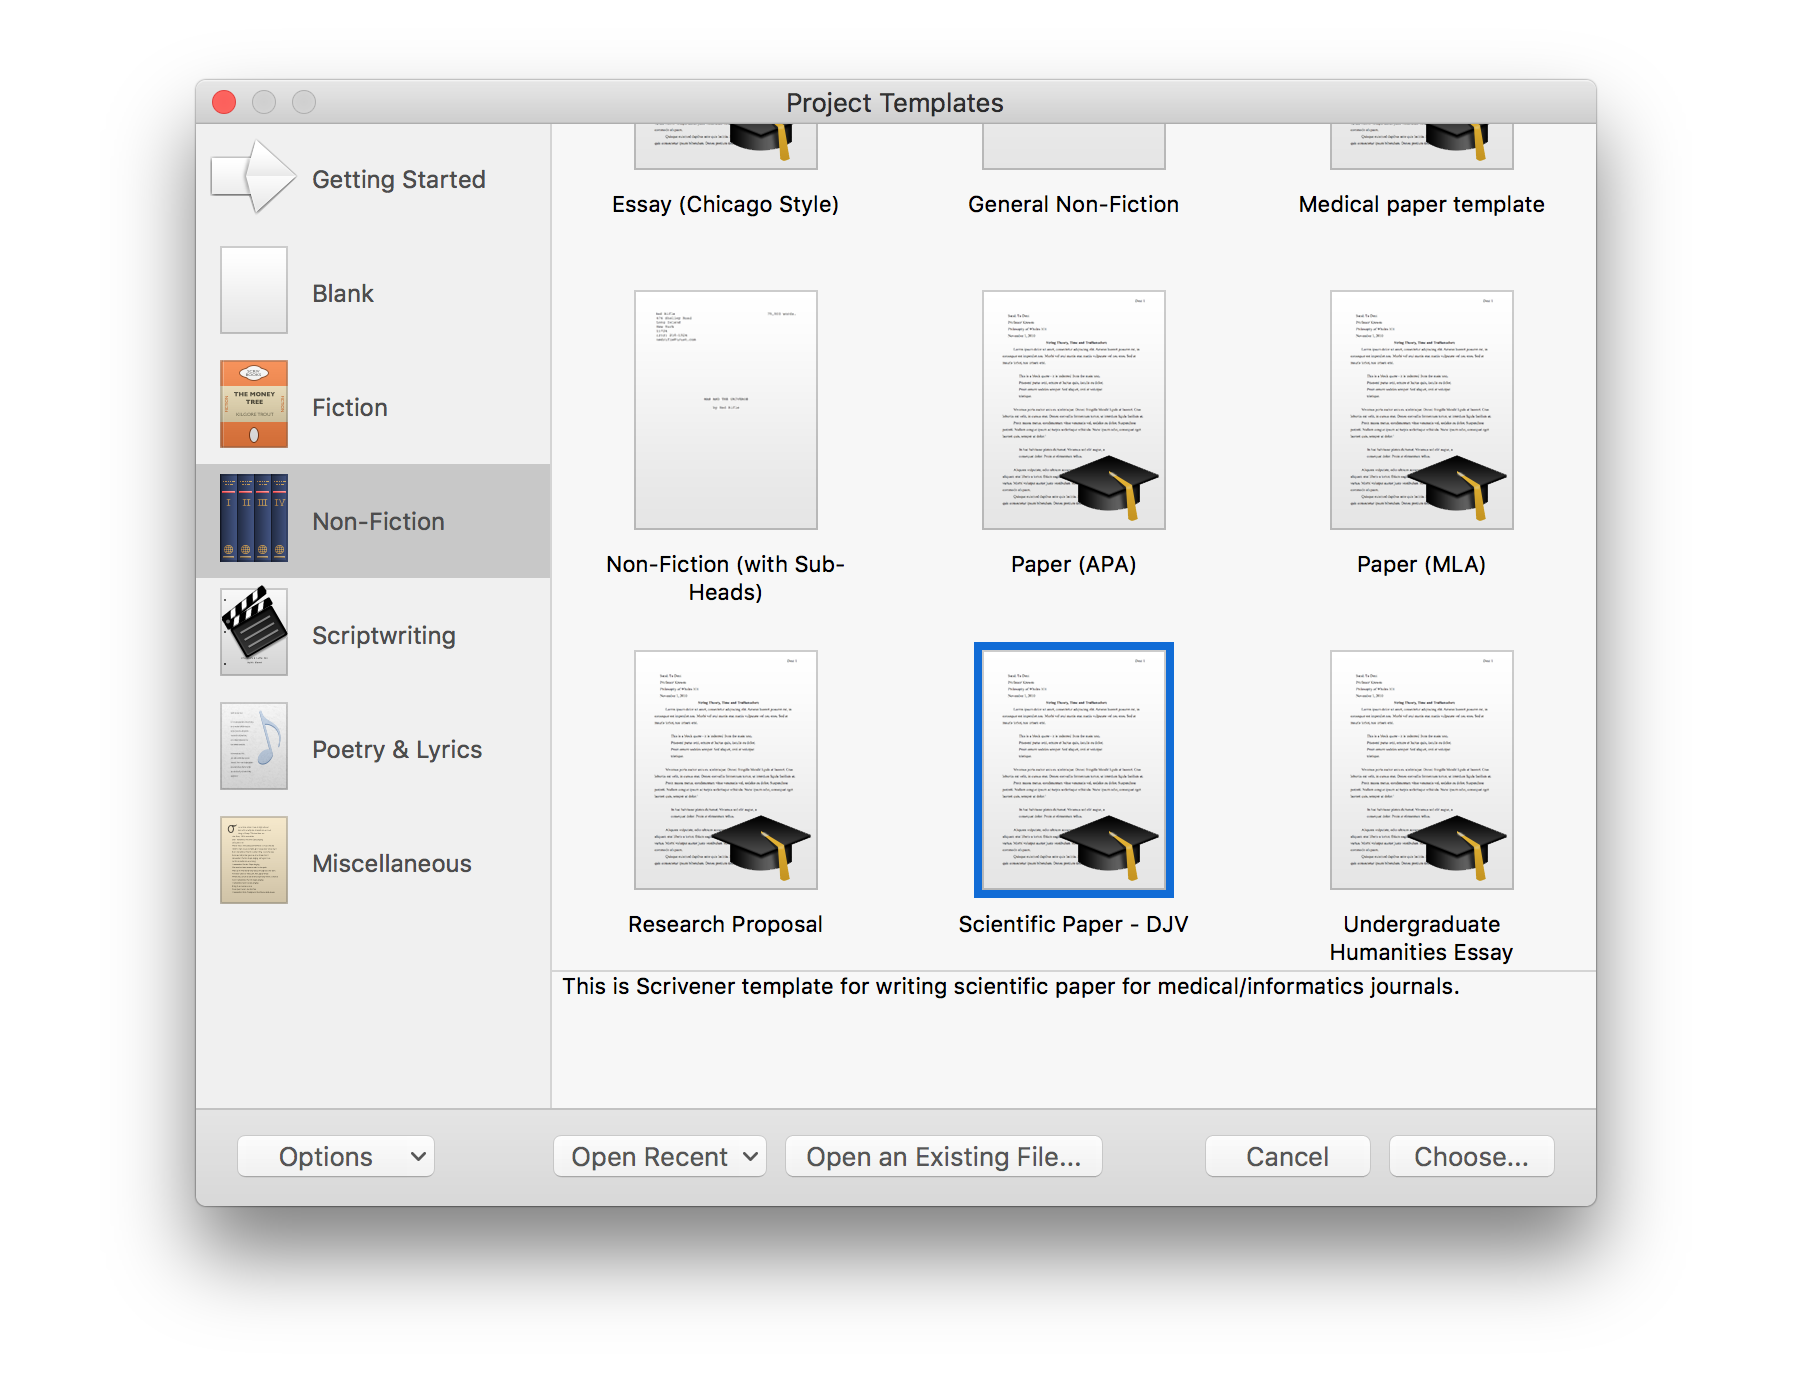 Importing a scrivener template for scientific papers daniel vreeman if you are importing my template for writing scientific papers youll find it under the non fiction category pronofoot35fo Images